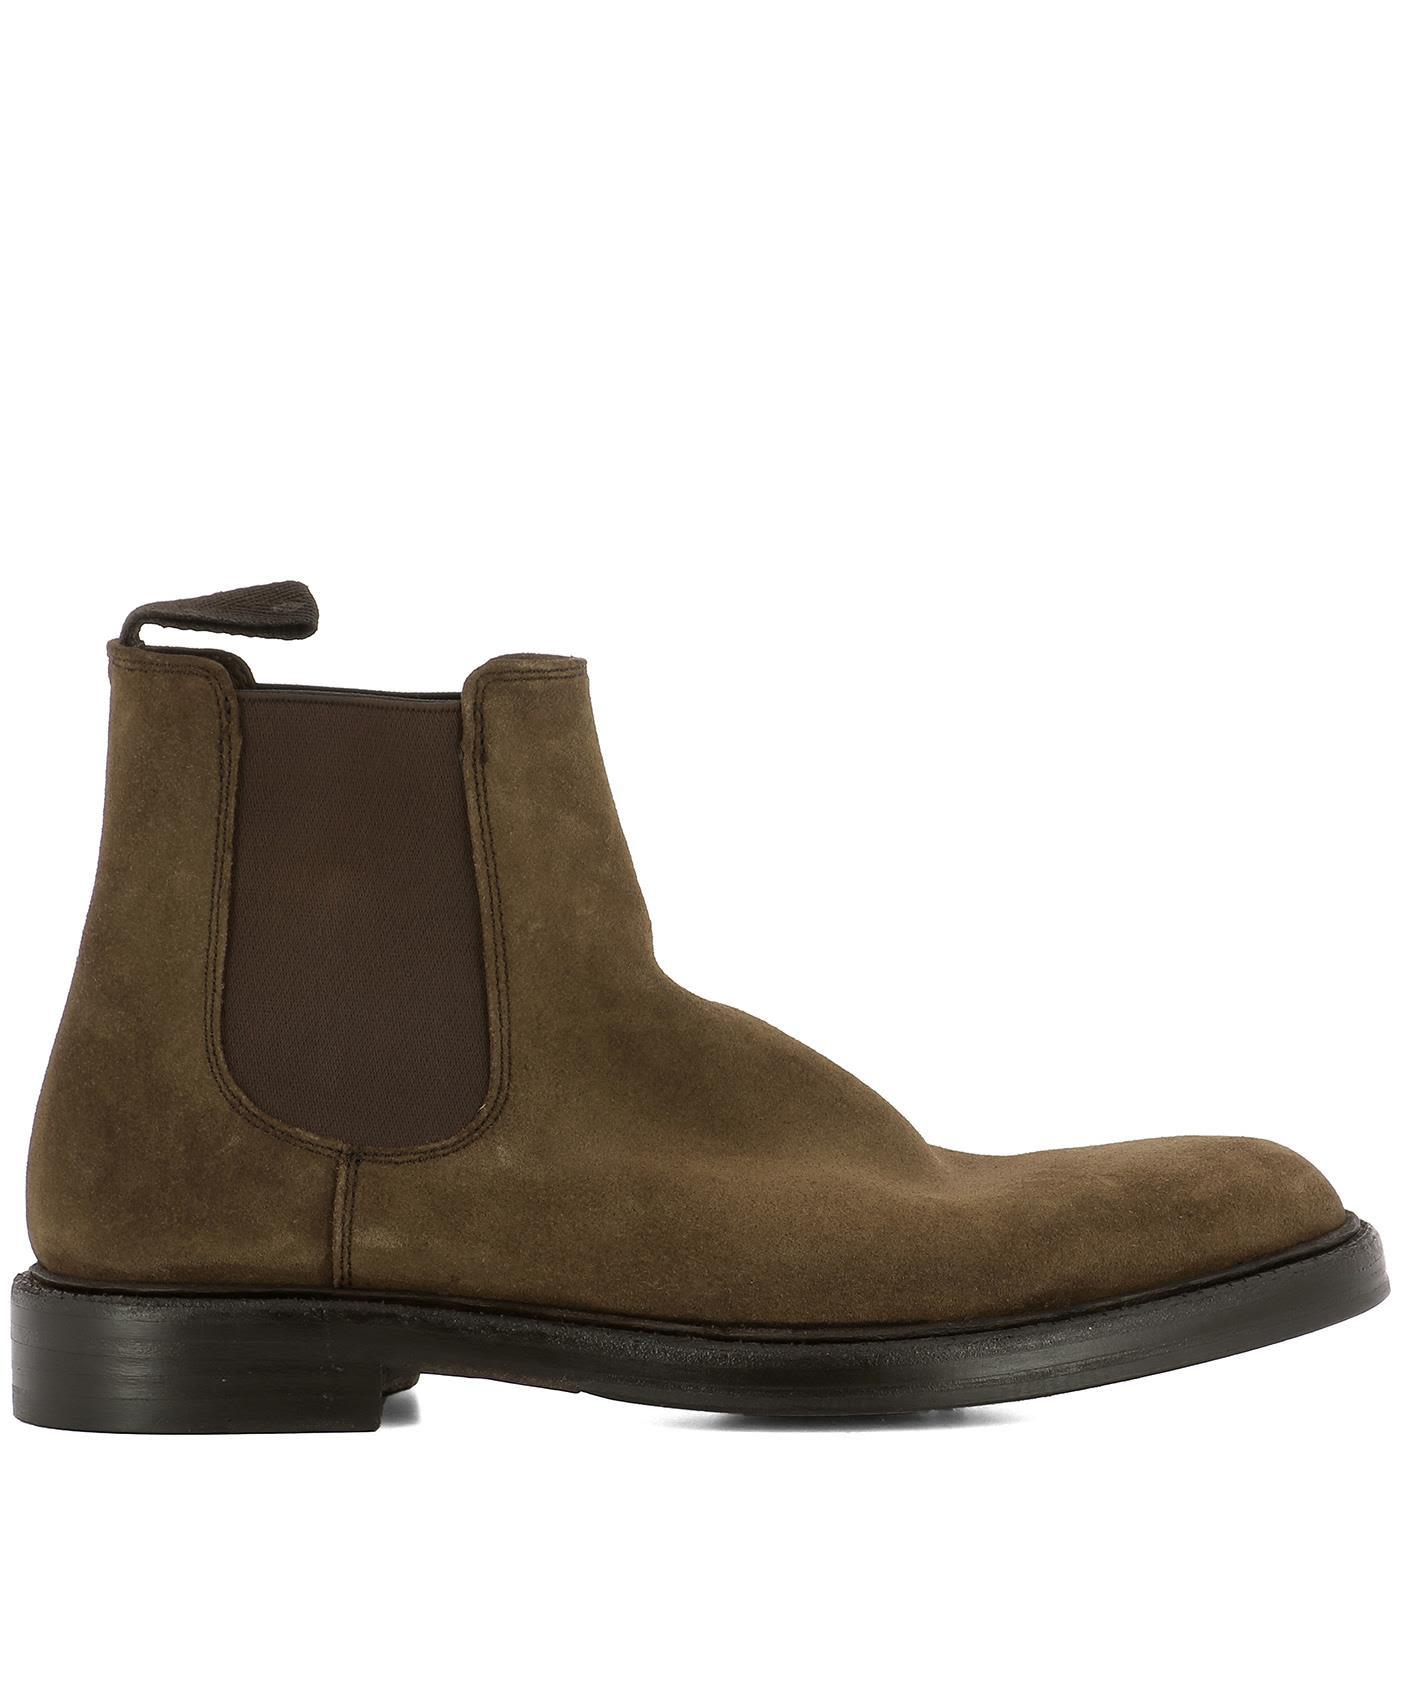 Green George Brown Suede Ankle Boots